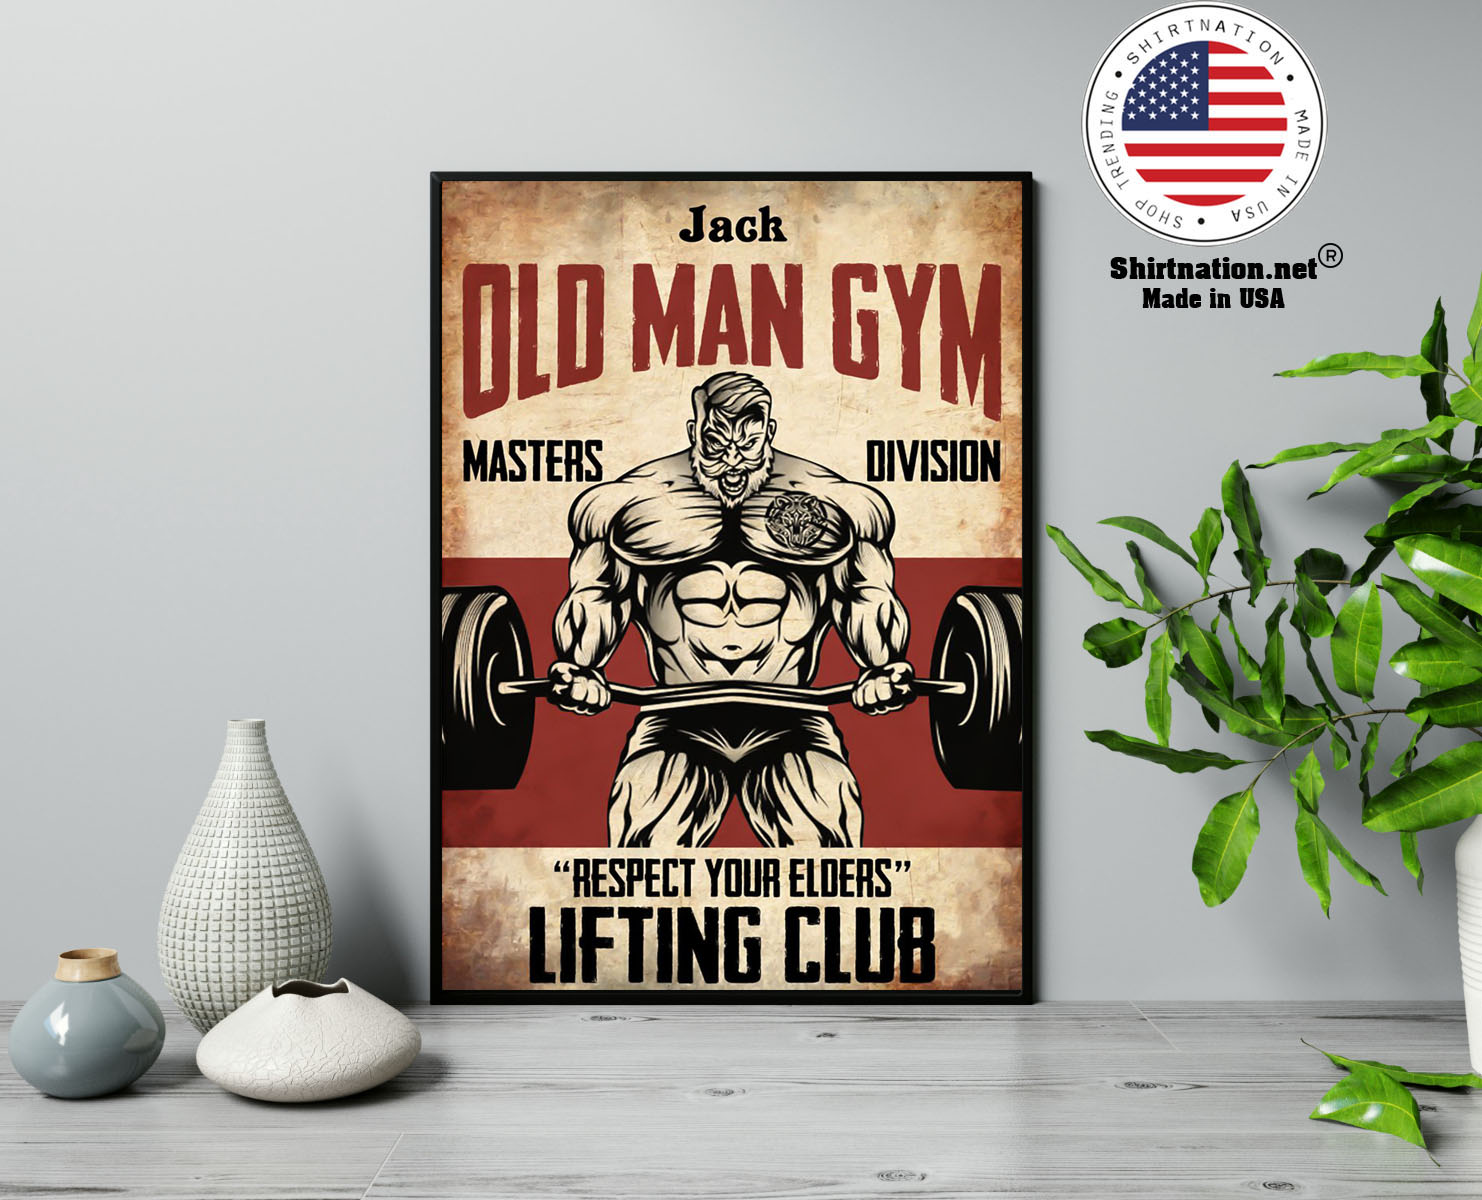 Old man gym masters division respect your elders lifting club poster 13